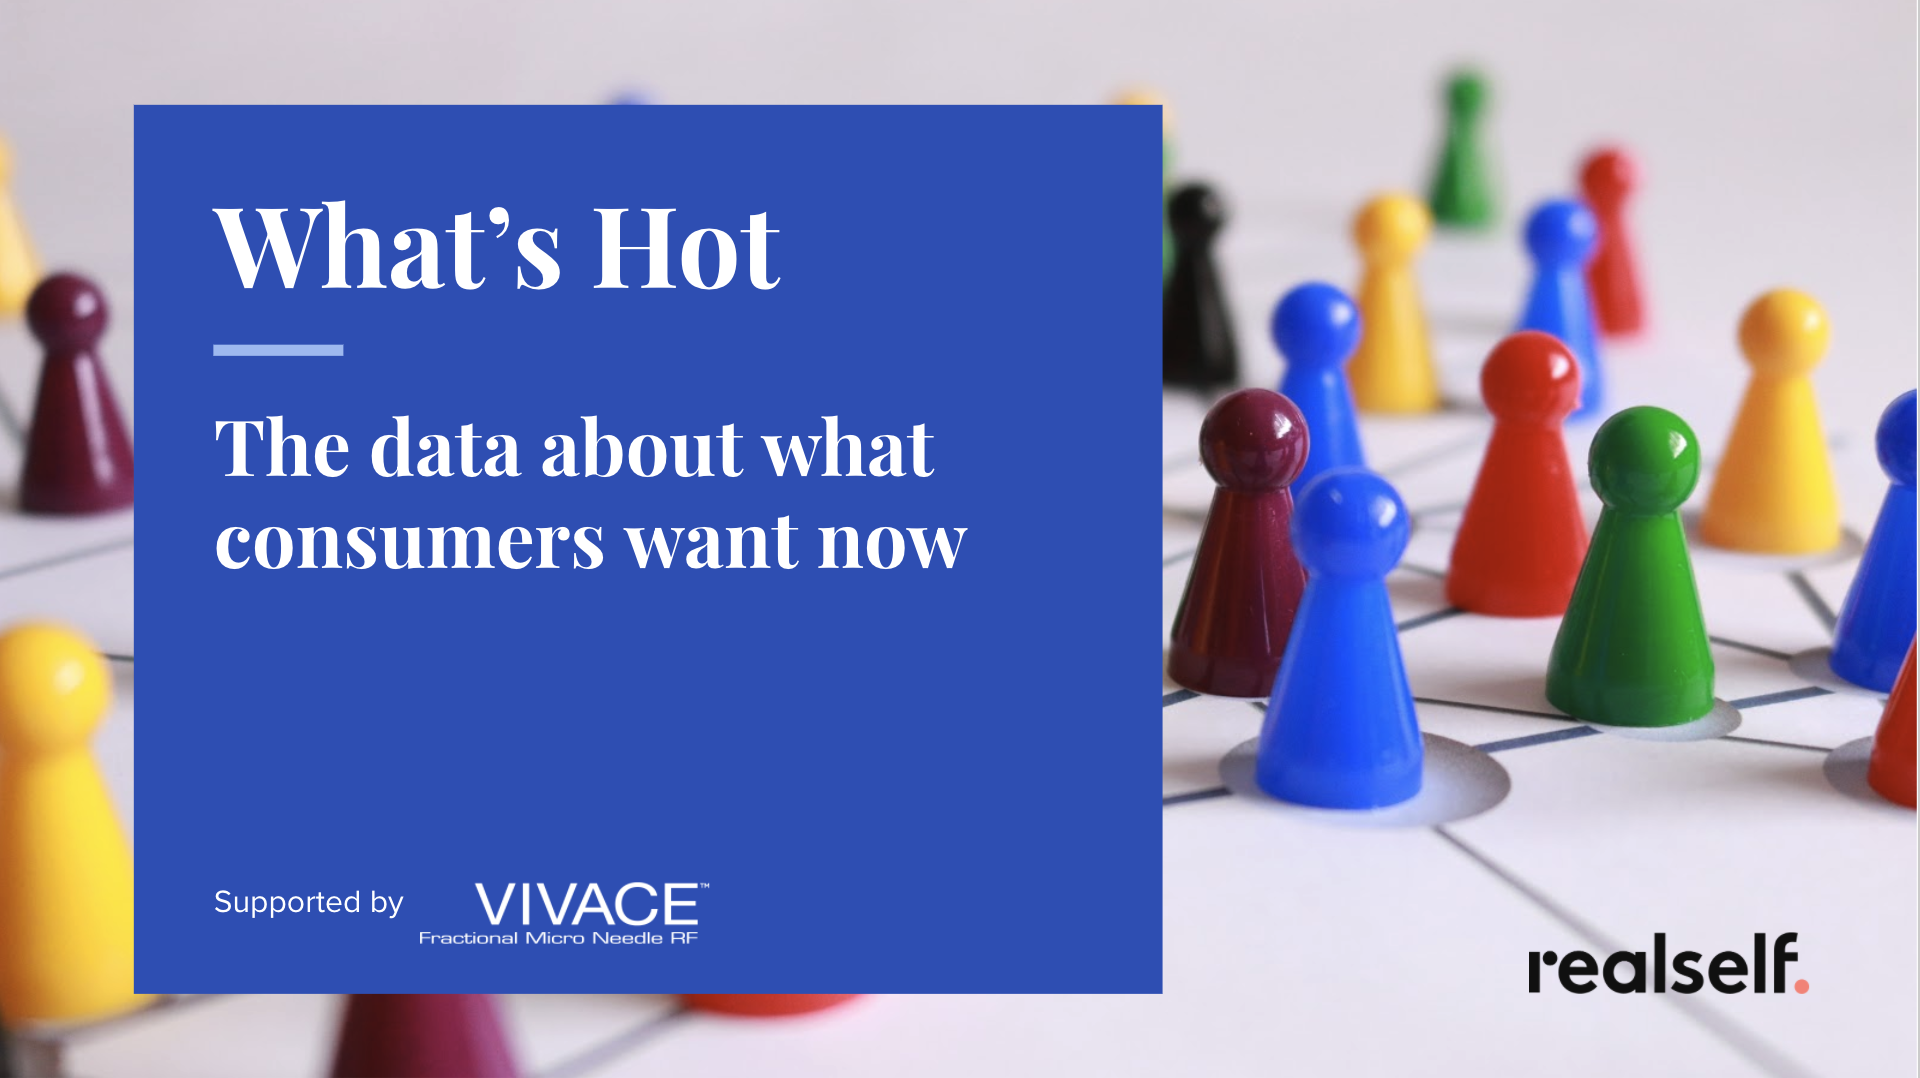 What's Hot. The Data About What Consumers Want Now